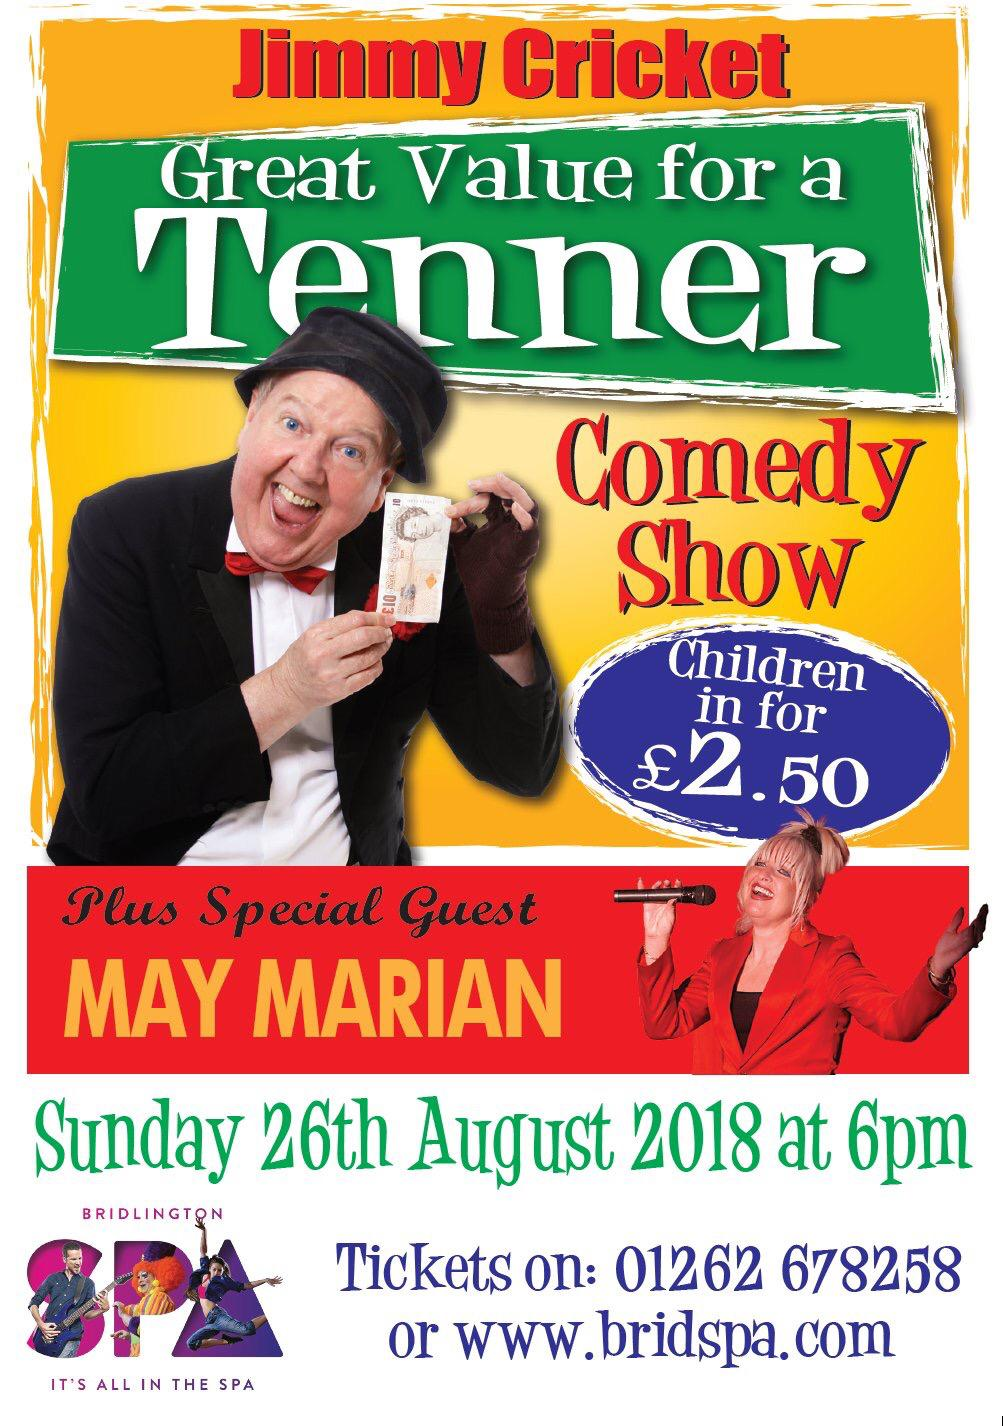 Jimmy Cricket is appearing at Bridlington Spa with his wife May Marian